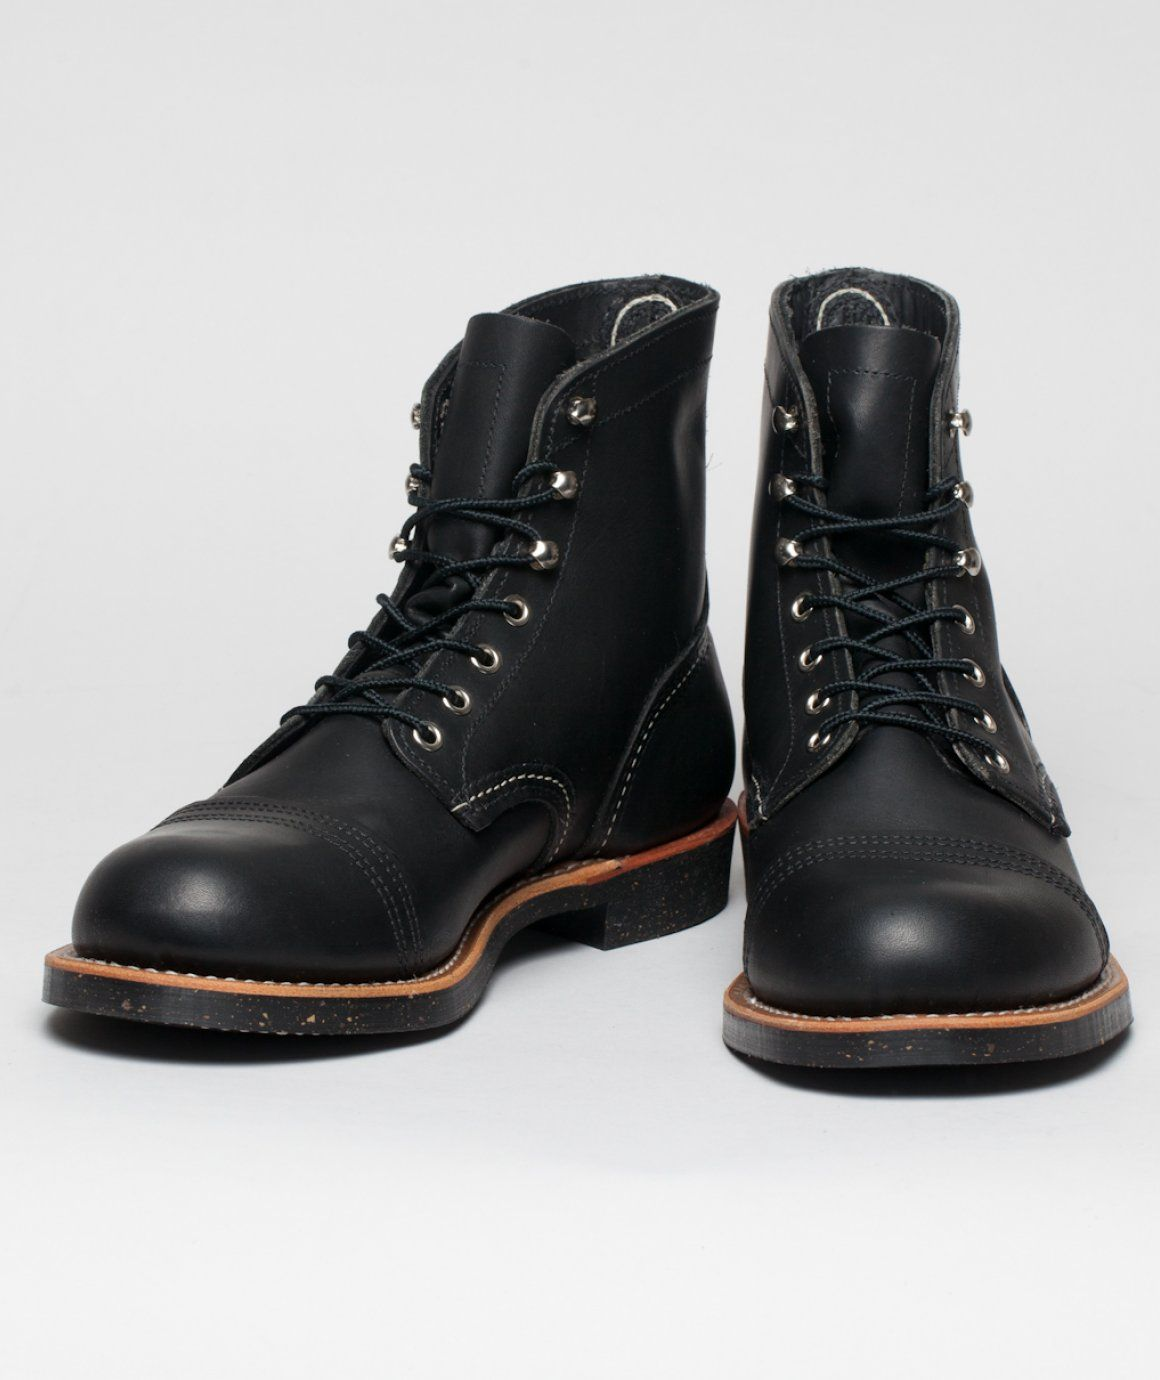 a9de424ec532 Red Wing - 8114 Iron Ranger